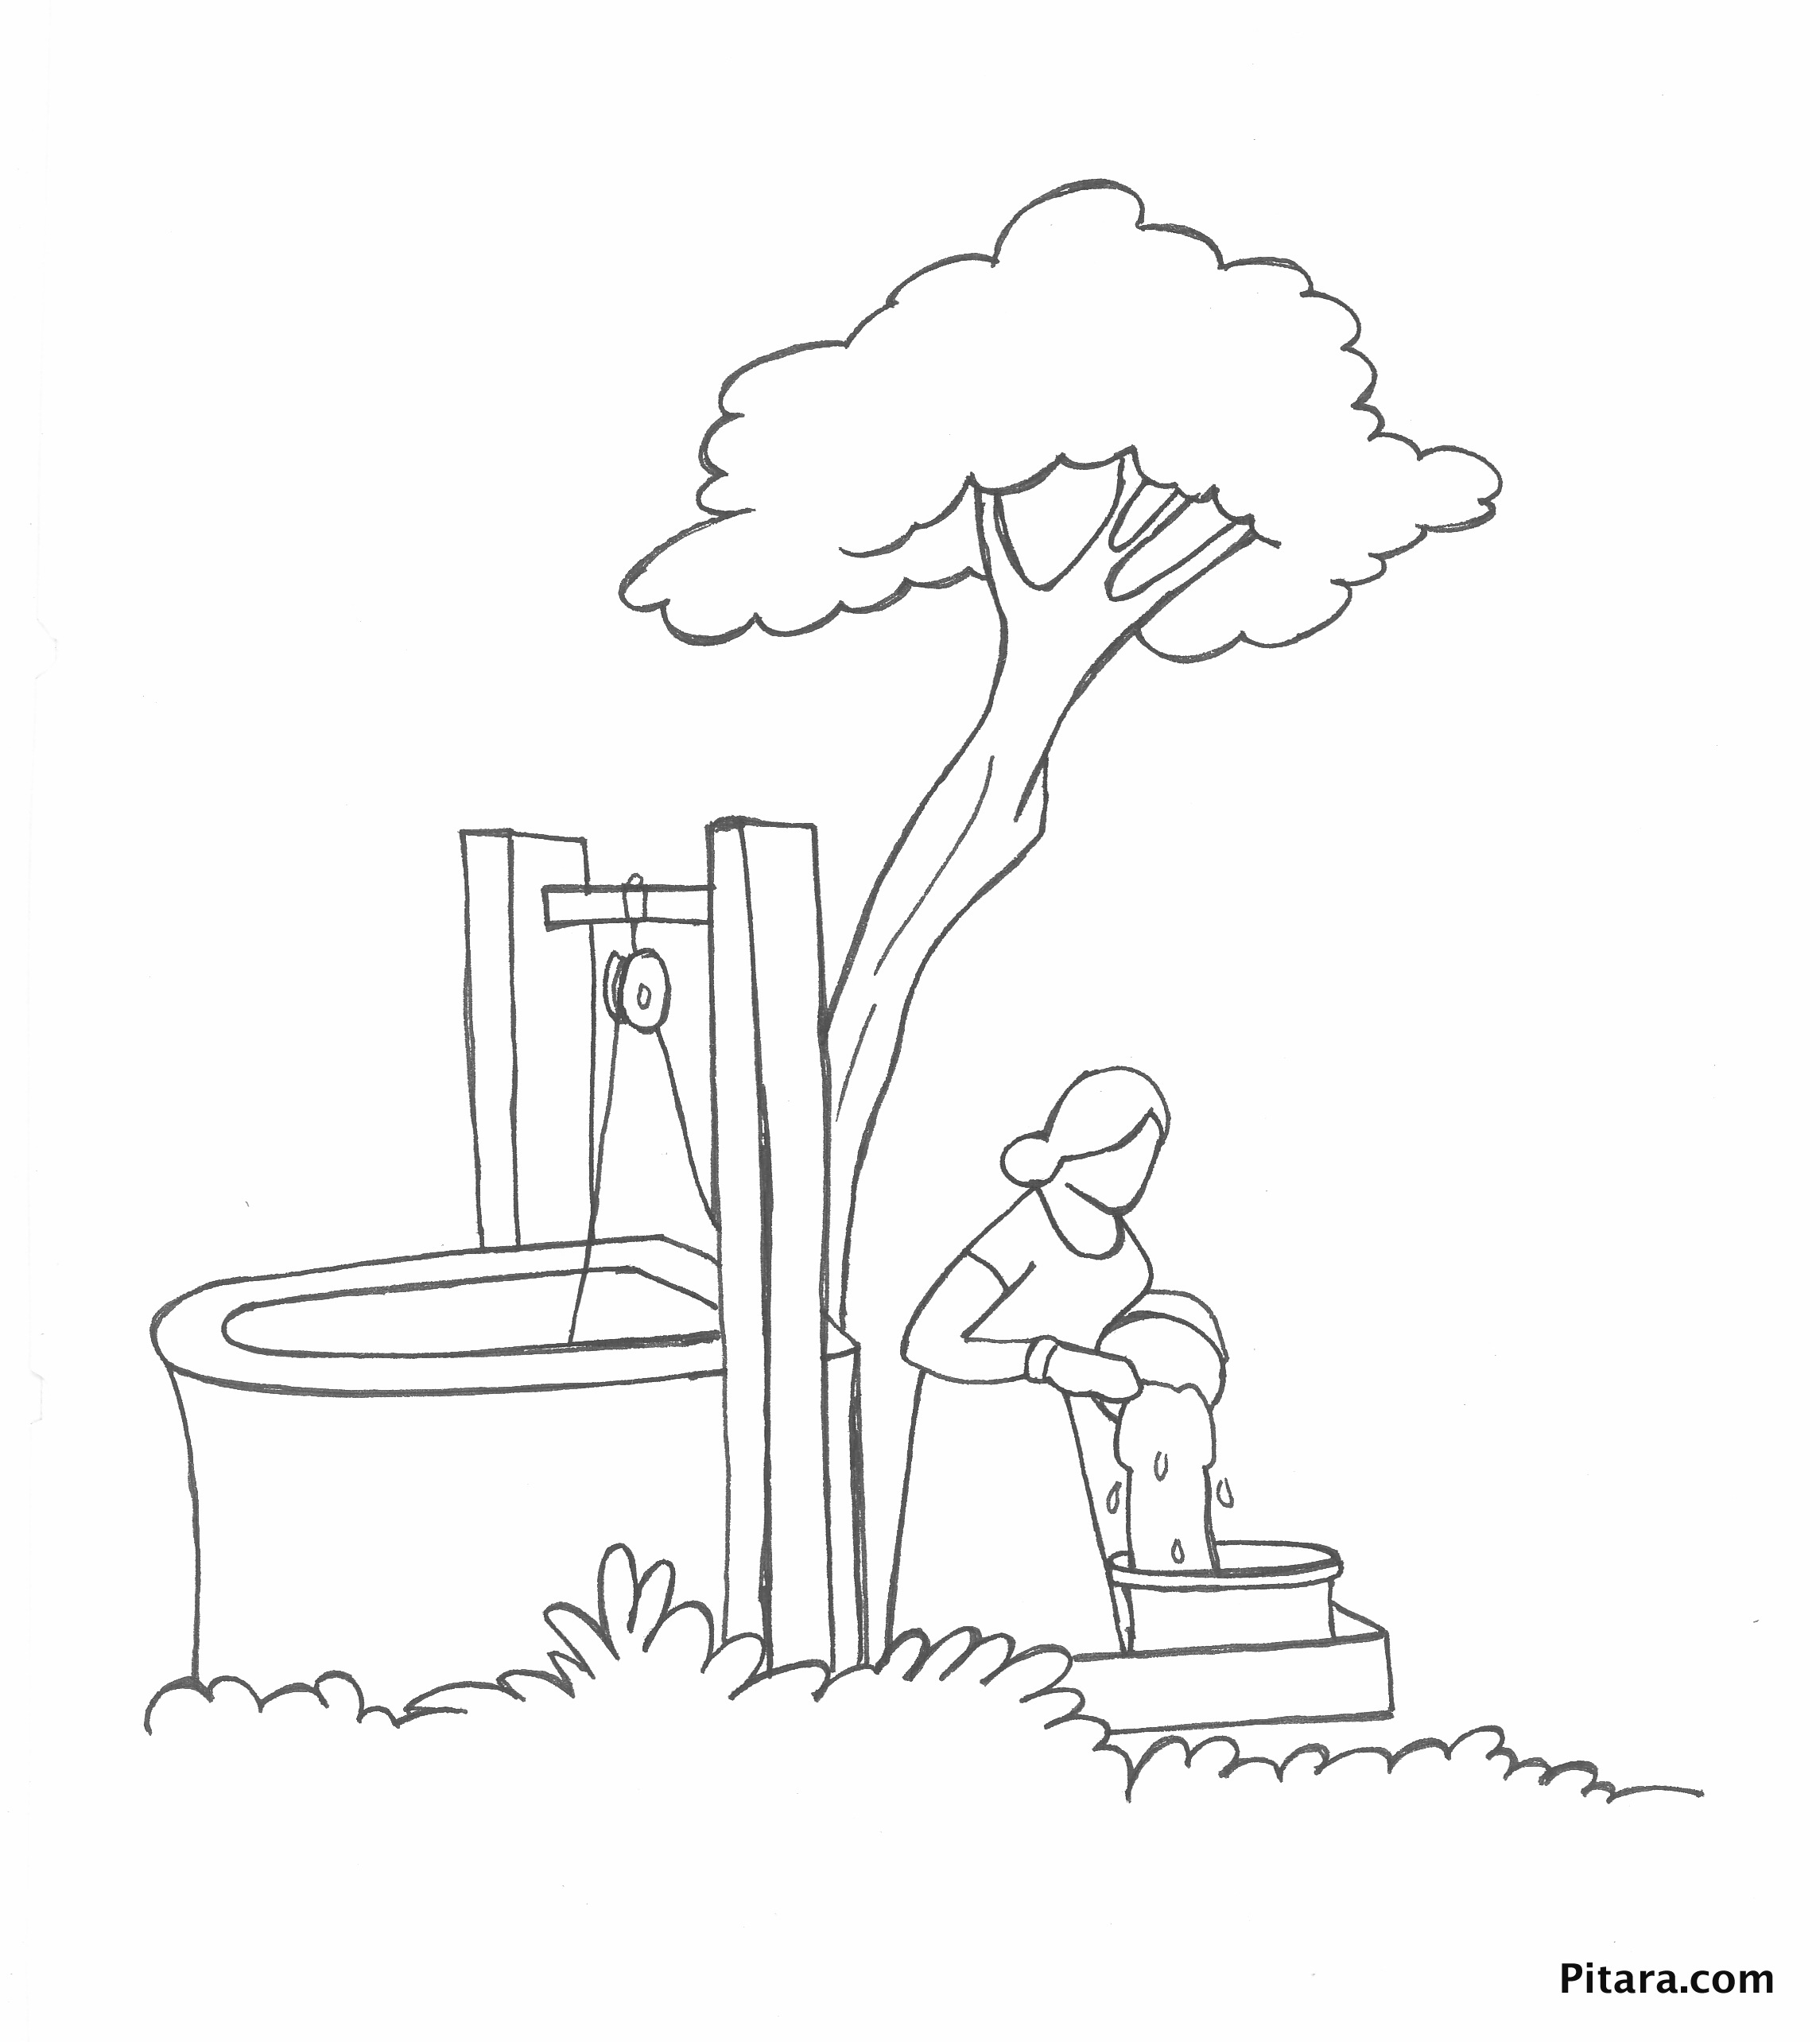 Drawing water from well – Coloring page